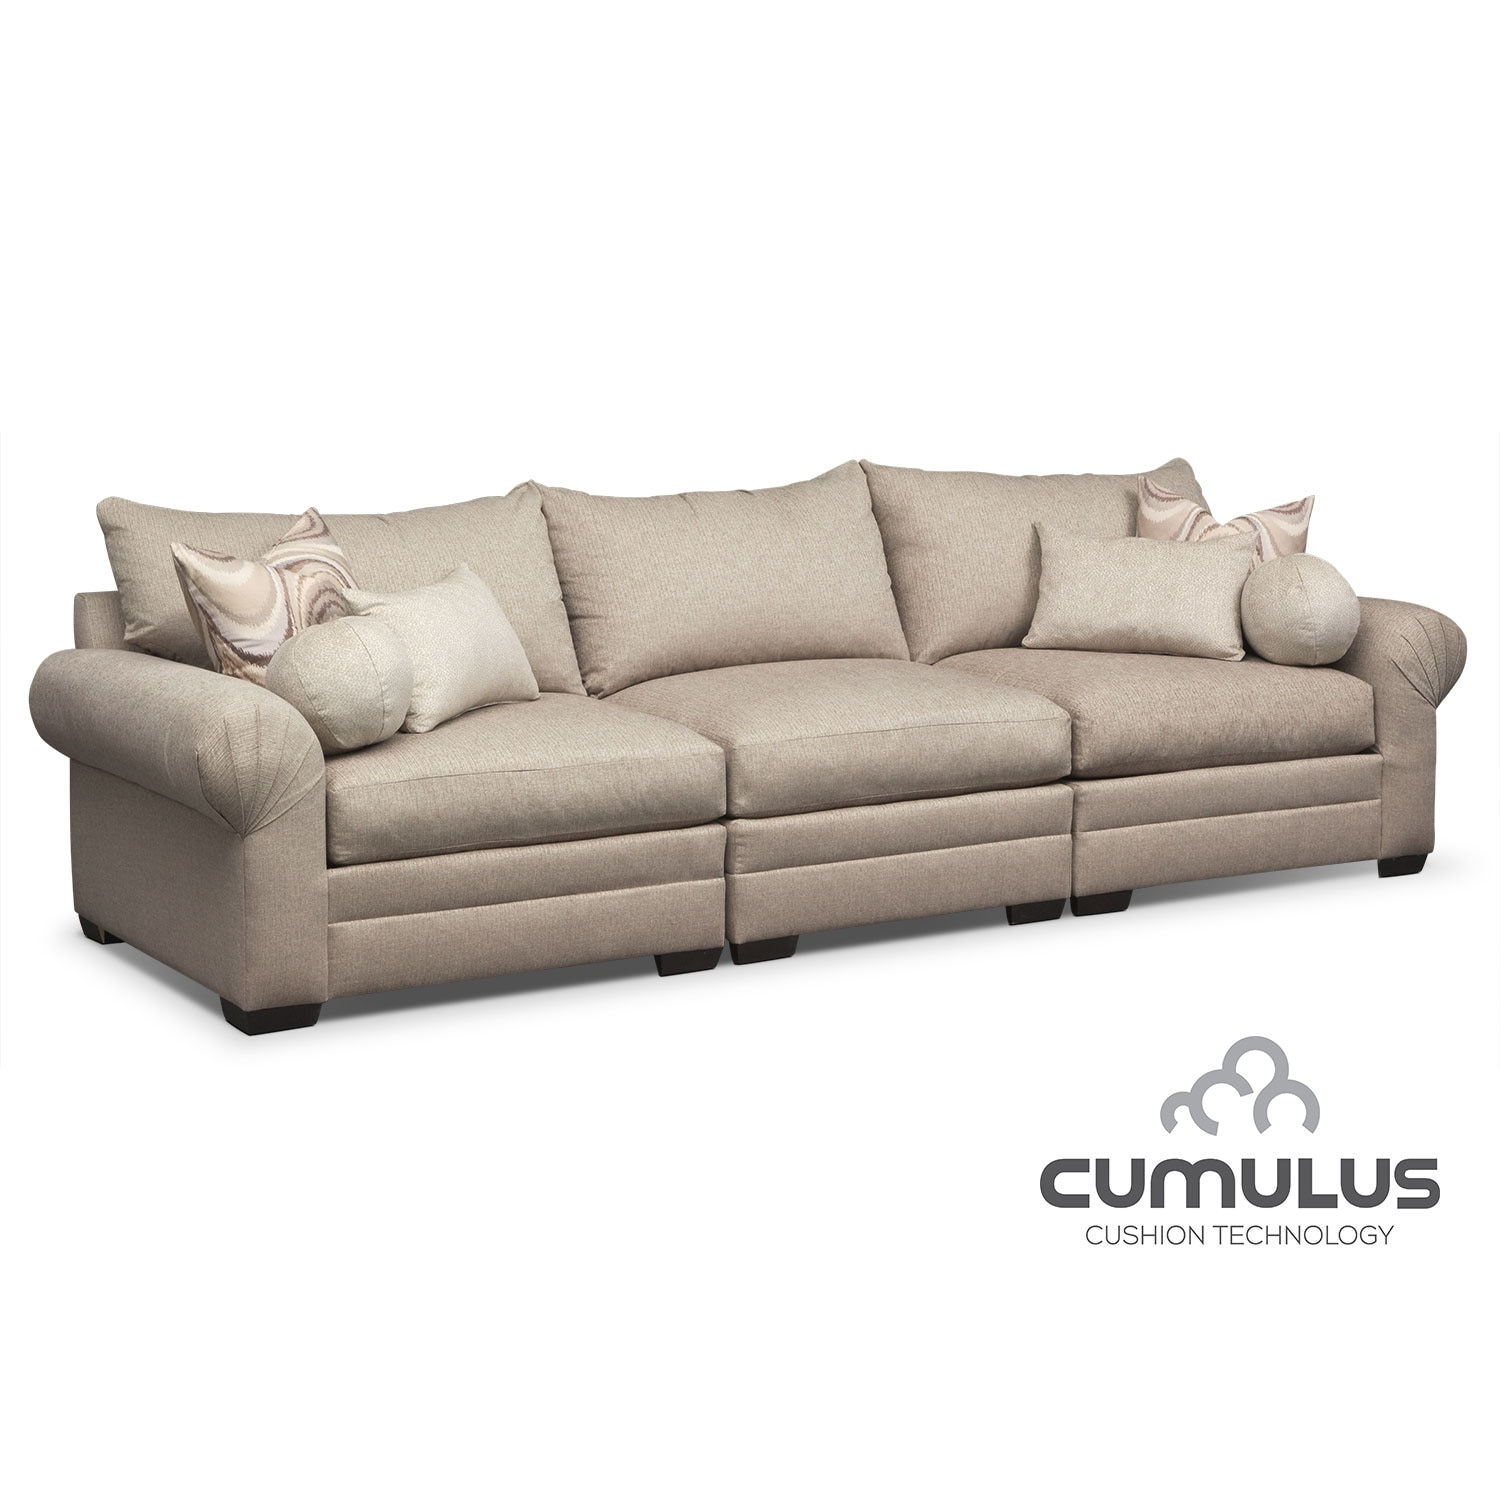 Wilshire 3-Piece Sectional - Cream